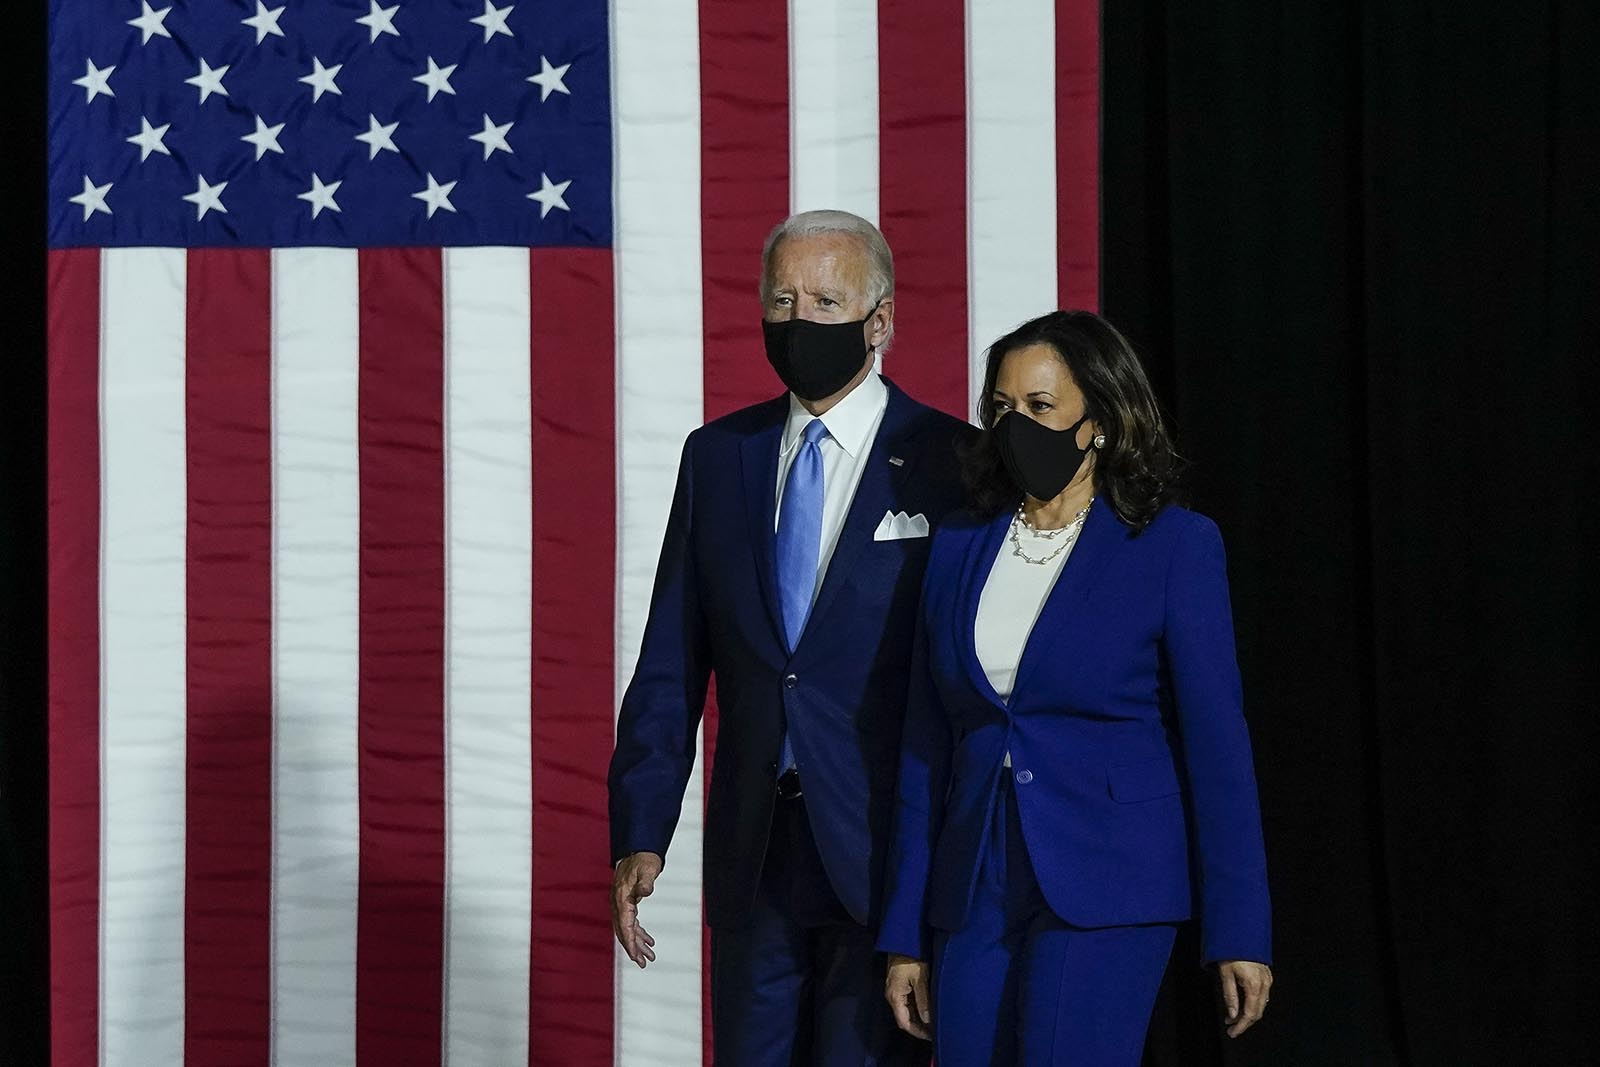 Democratic presidential nominee Joe Biden and his running mate Sen. Kamala Harris arrive to deliver remarks at the Alexis Dupont High School on August 12, in Wilmington, Delaware.